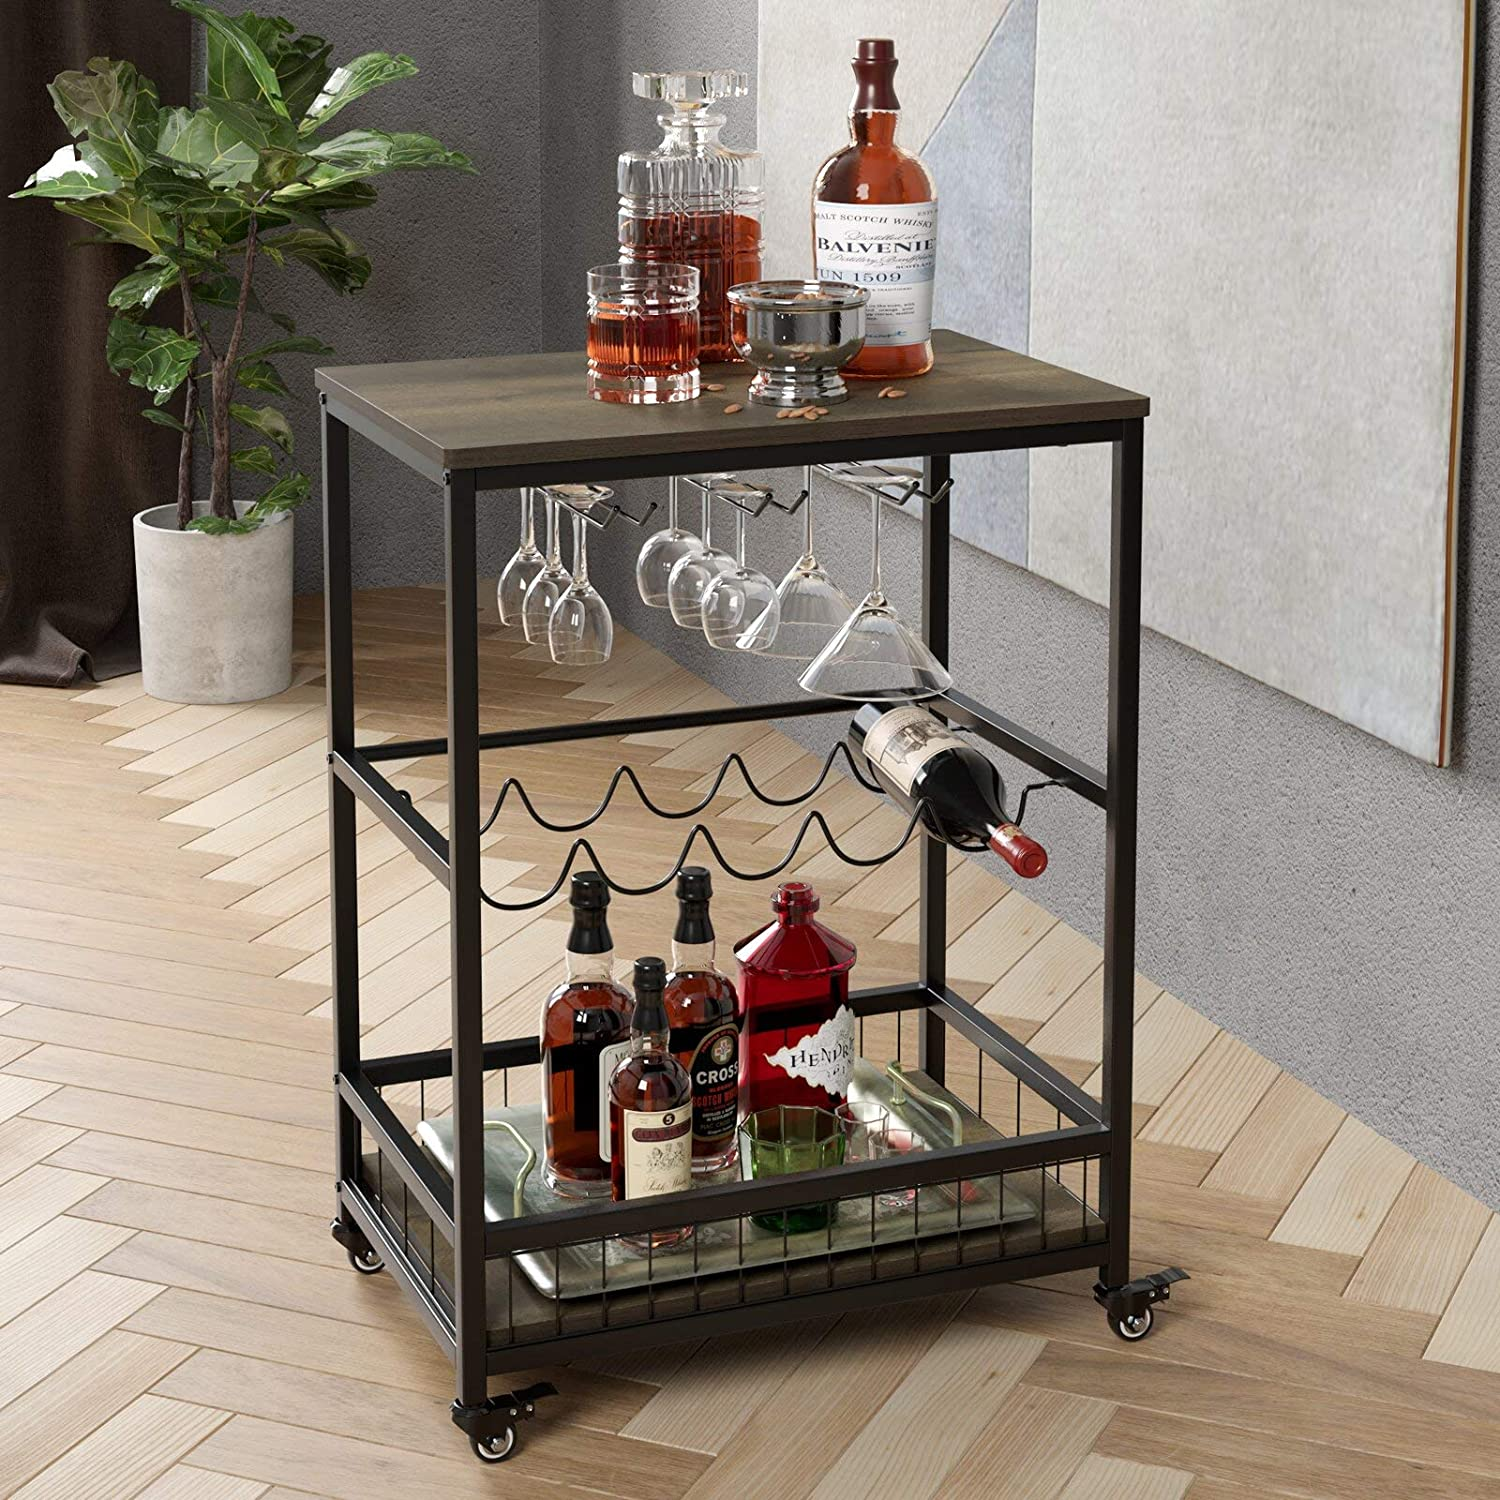 HOMECHO Bar Carts for Home, Mobile Wine Cart on Wheels, Wine Rack Table with Glass Holder, Utility Kitchen Serving Cart with Storage, Wood and Metal Frame,Dark Brown